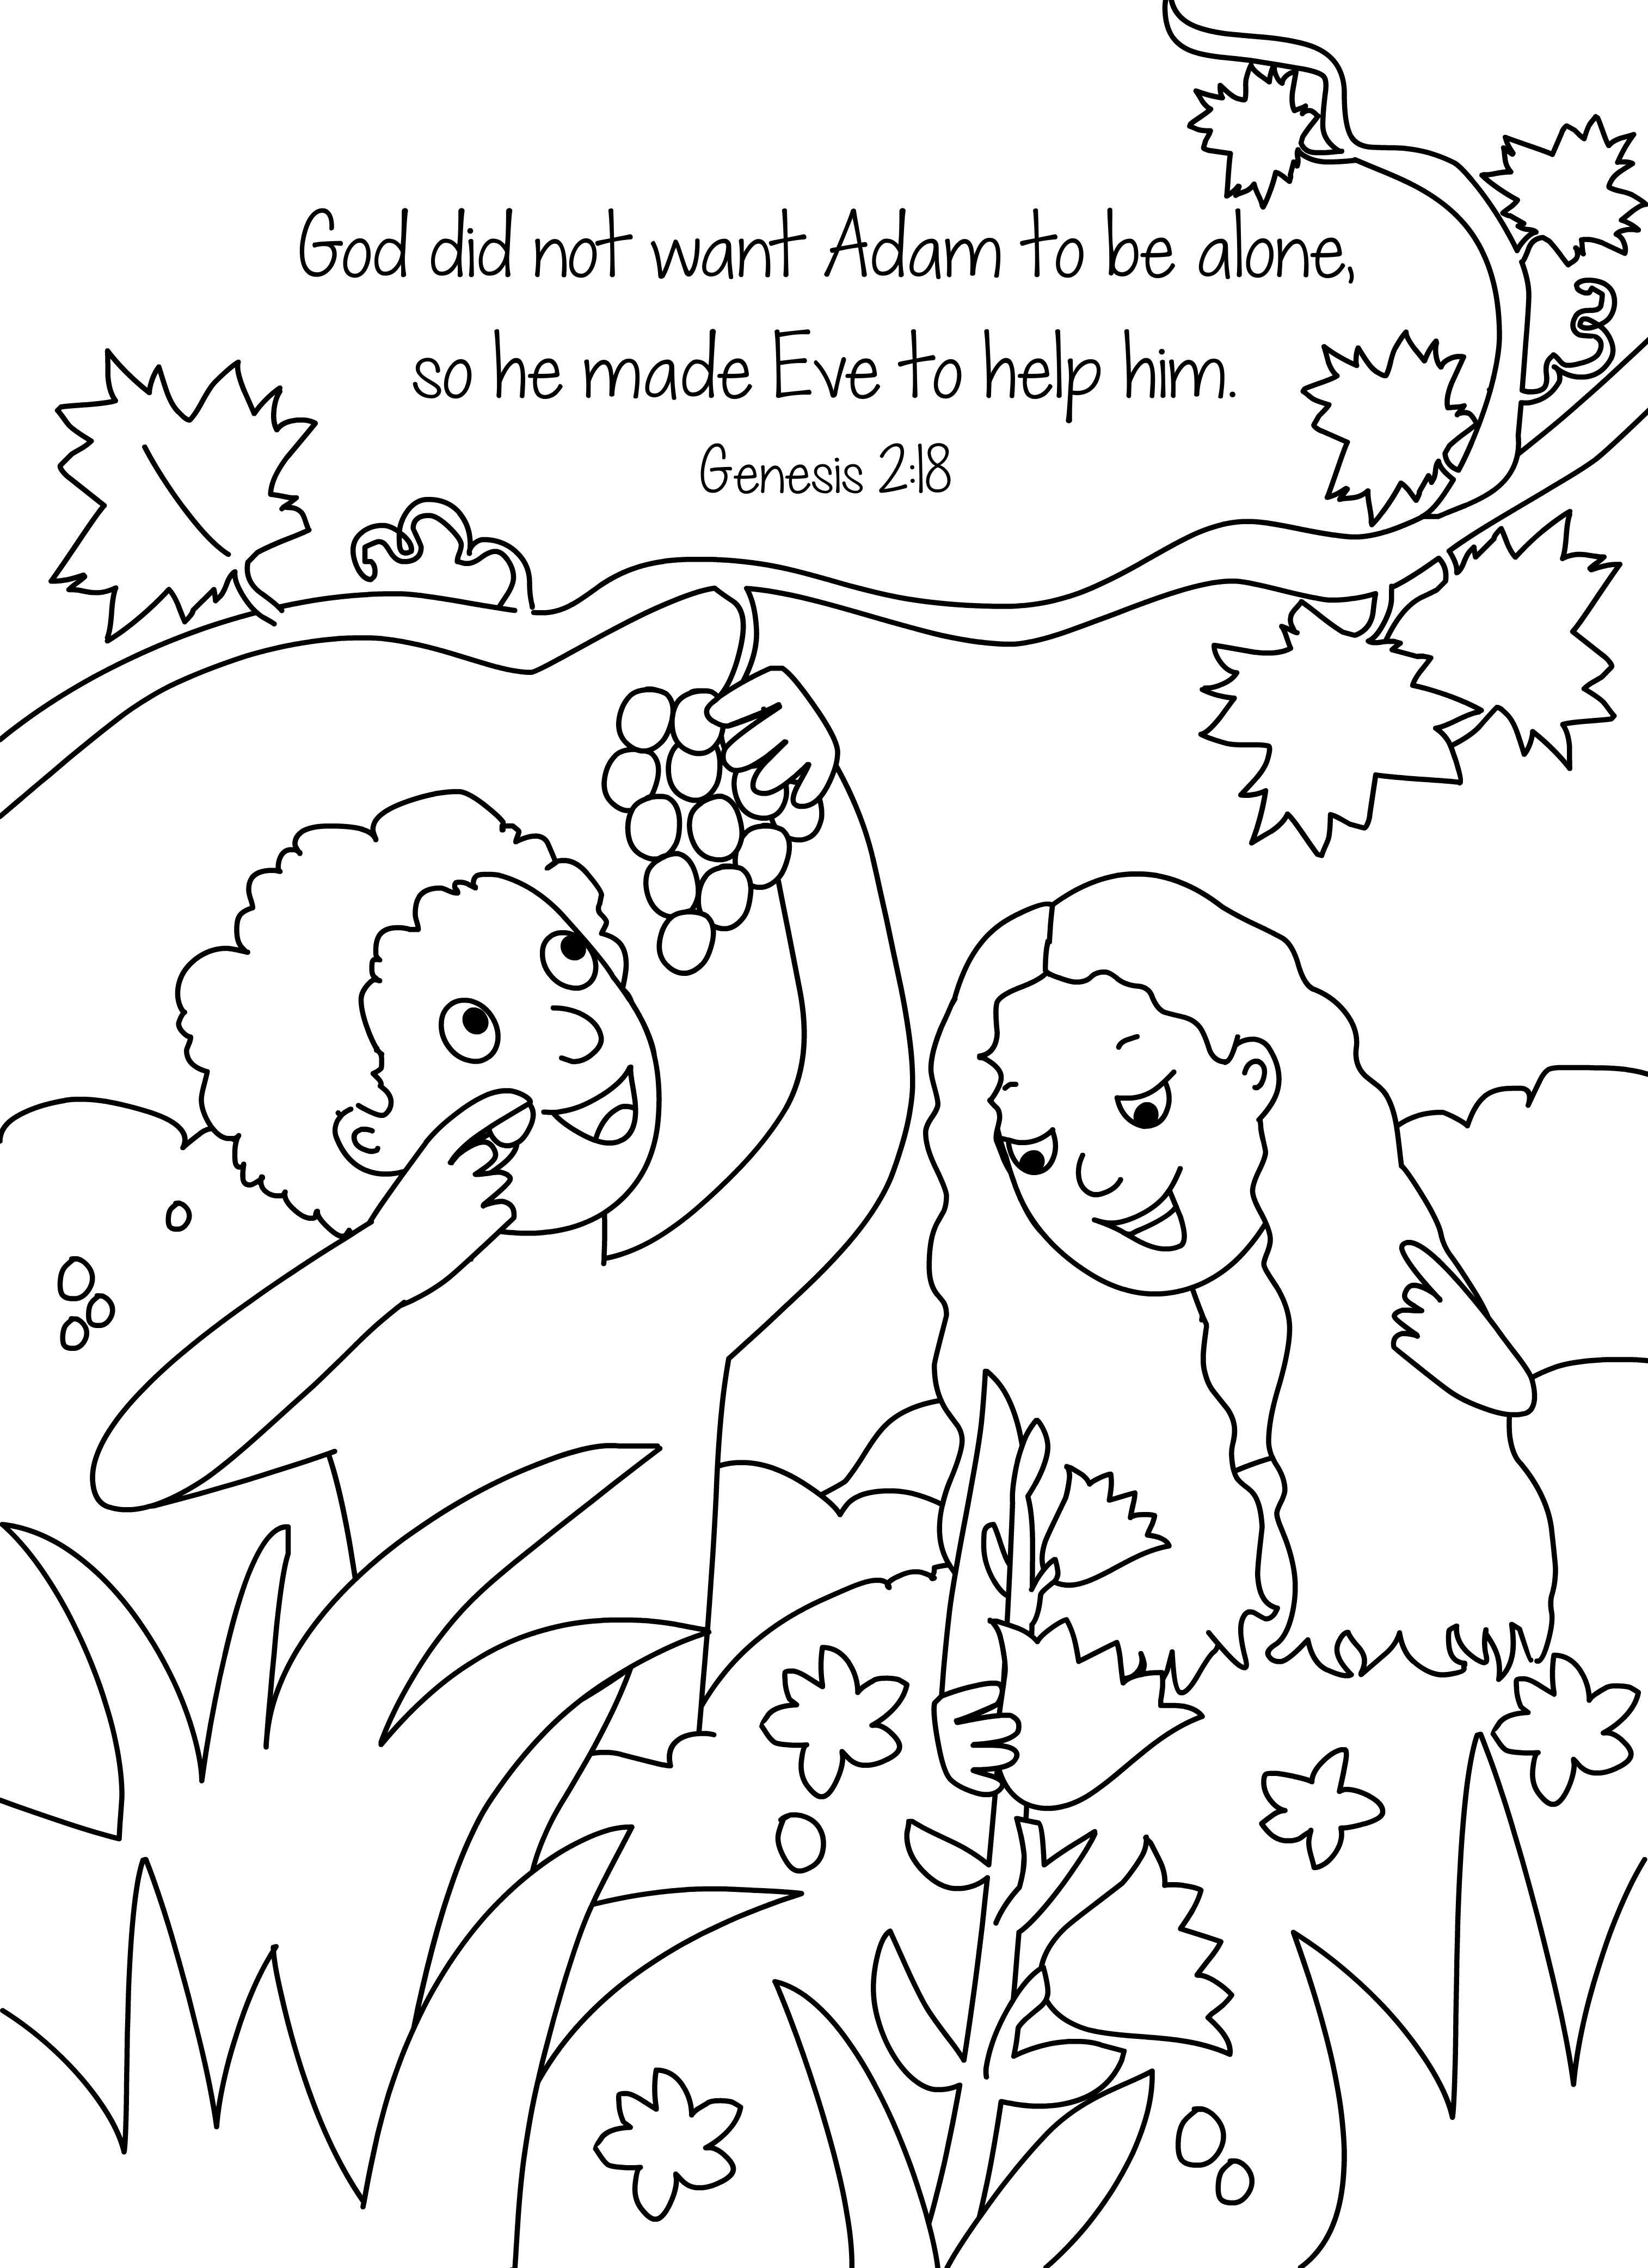 Related Image Earth Coloring Pages Creation Coloring Pages Sunday School Coloring Pages